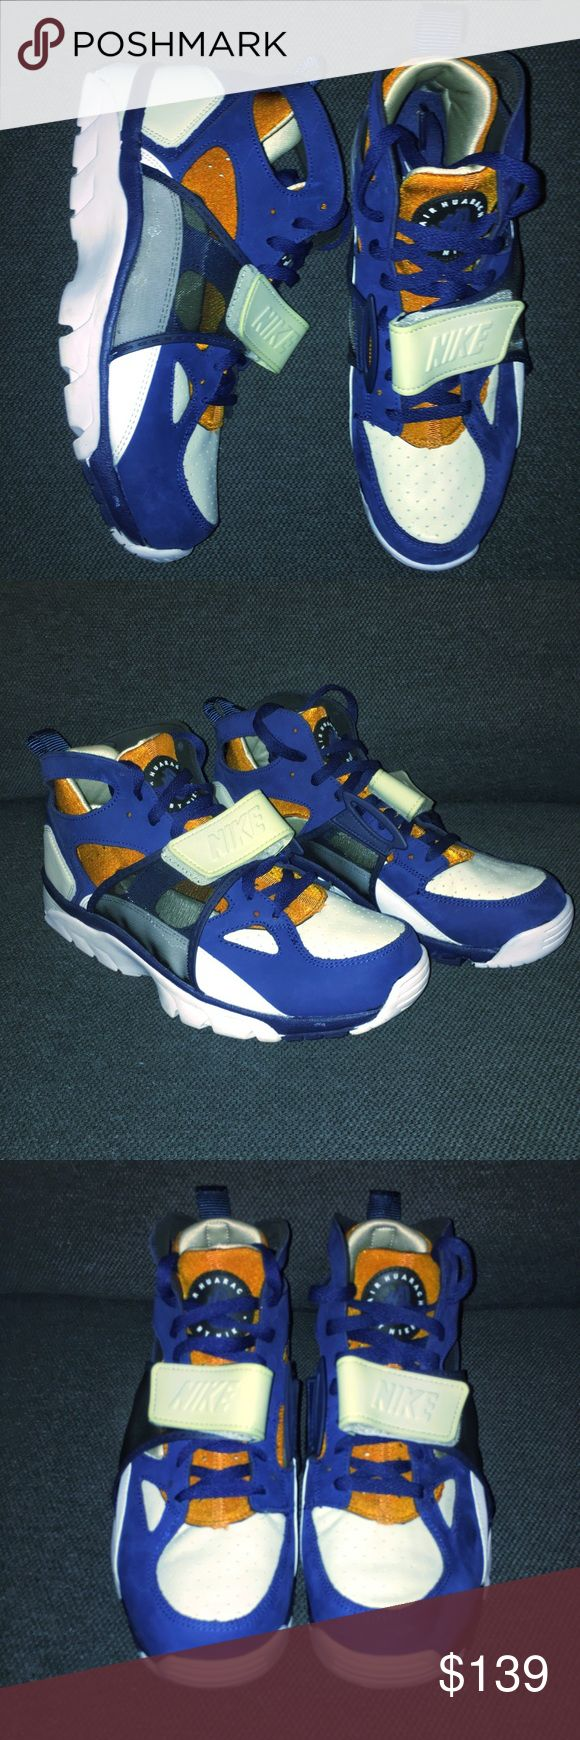 Nike Air Trainer Huarache PRM Brand New without Box. Nike Shoes Athletic Shoes